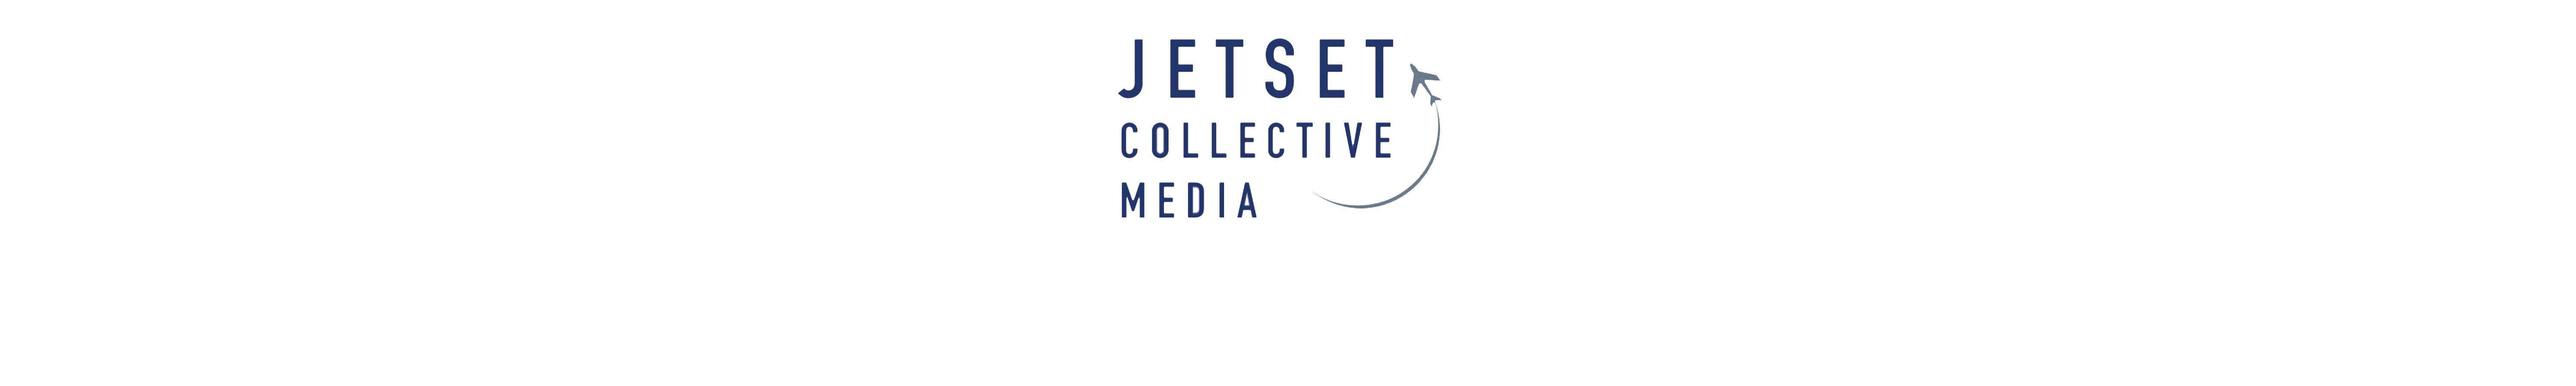 Jetset Collective Media